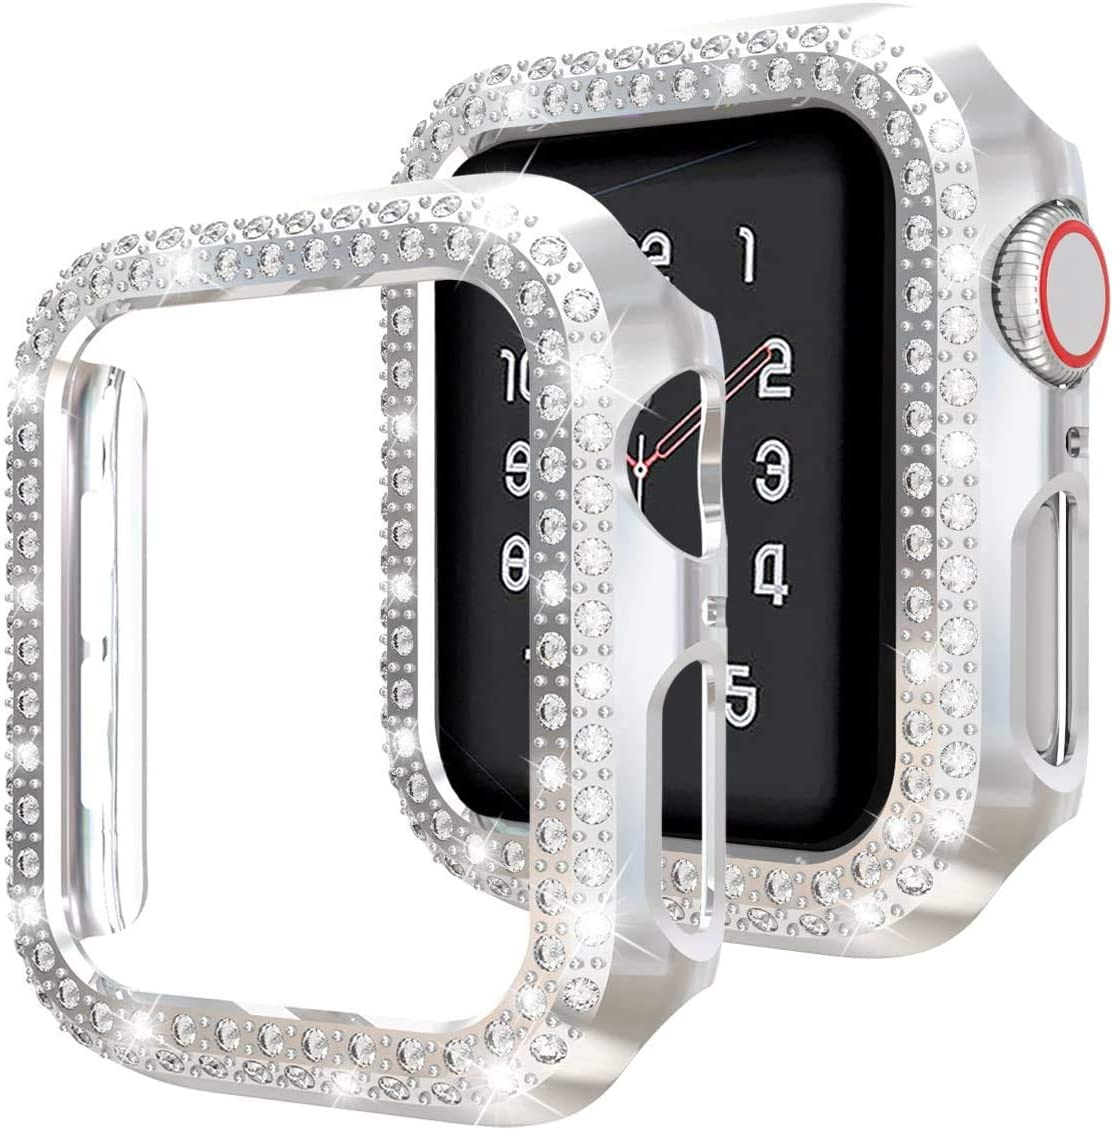 Hepsun Compatible with Apple Watch Case 40mm 44mm, Plastic Bumper Screen Protective Cover Women Glitter Diamond Crystal Rhinestone Shiny Frame Compatible iWatch SE Series 6/5/4/3/2/1 (Silver, 44mm)